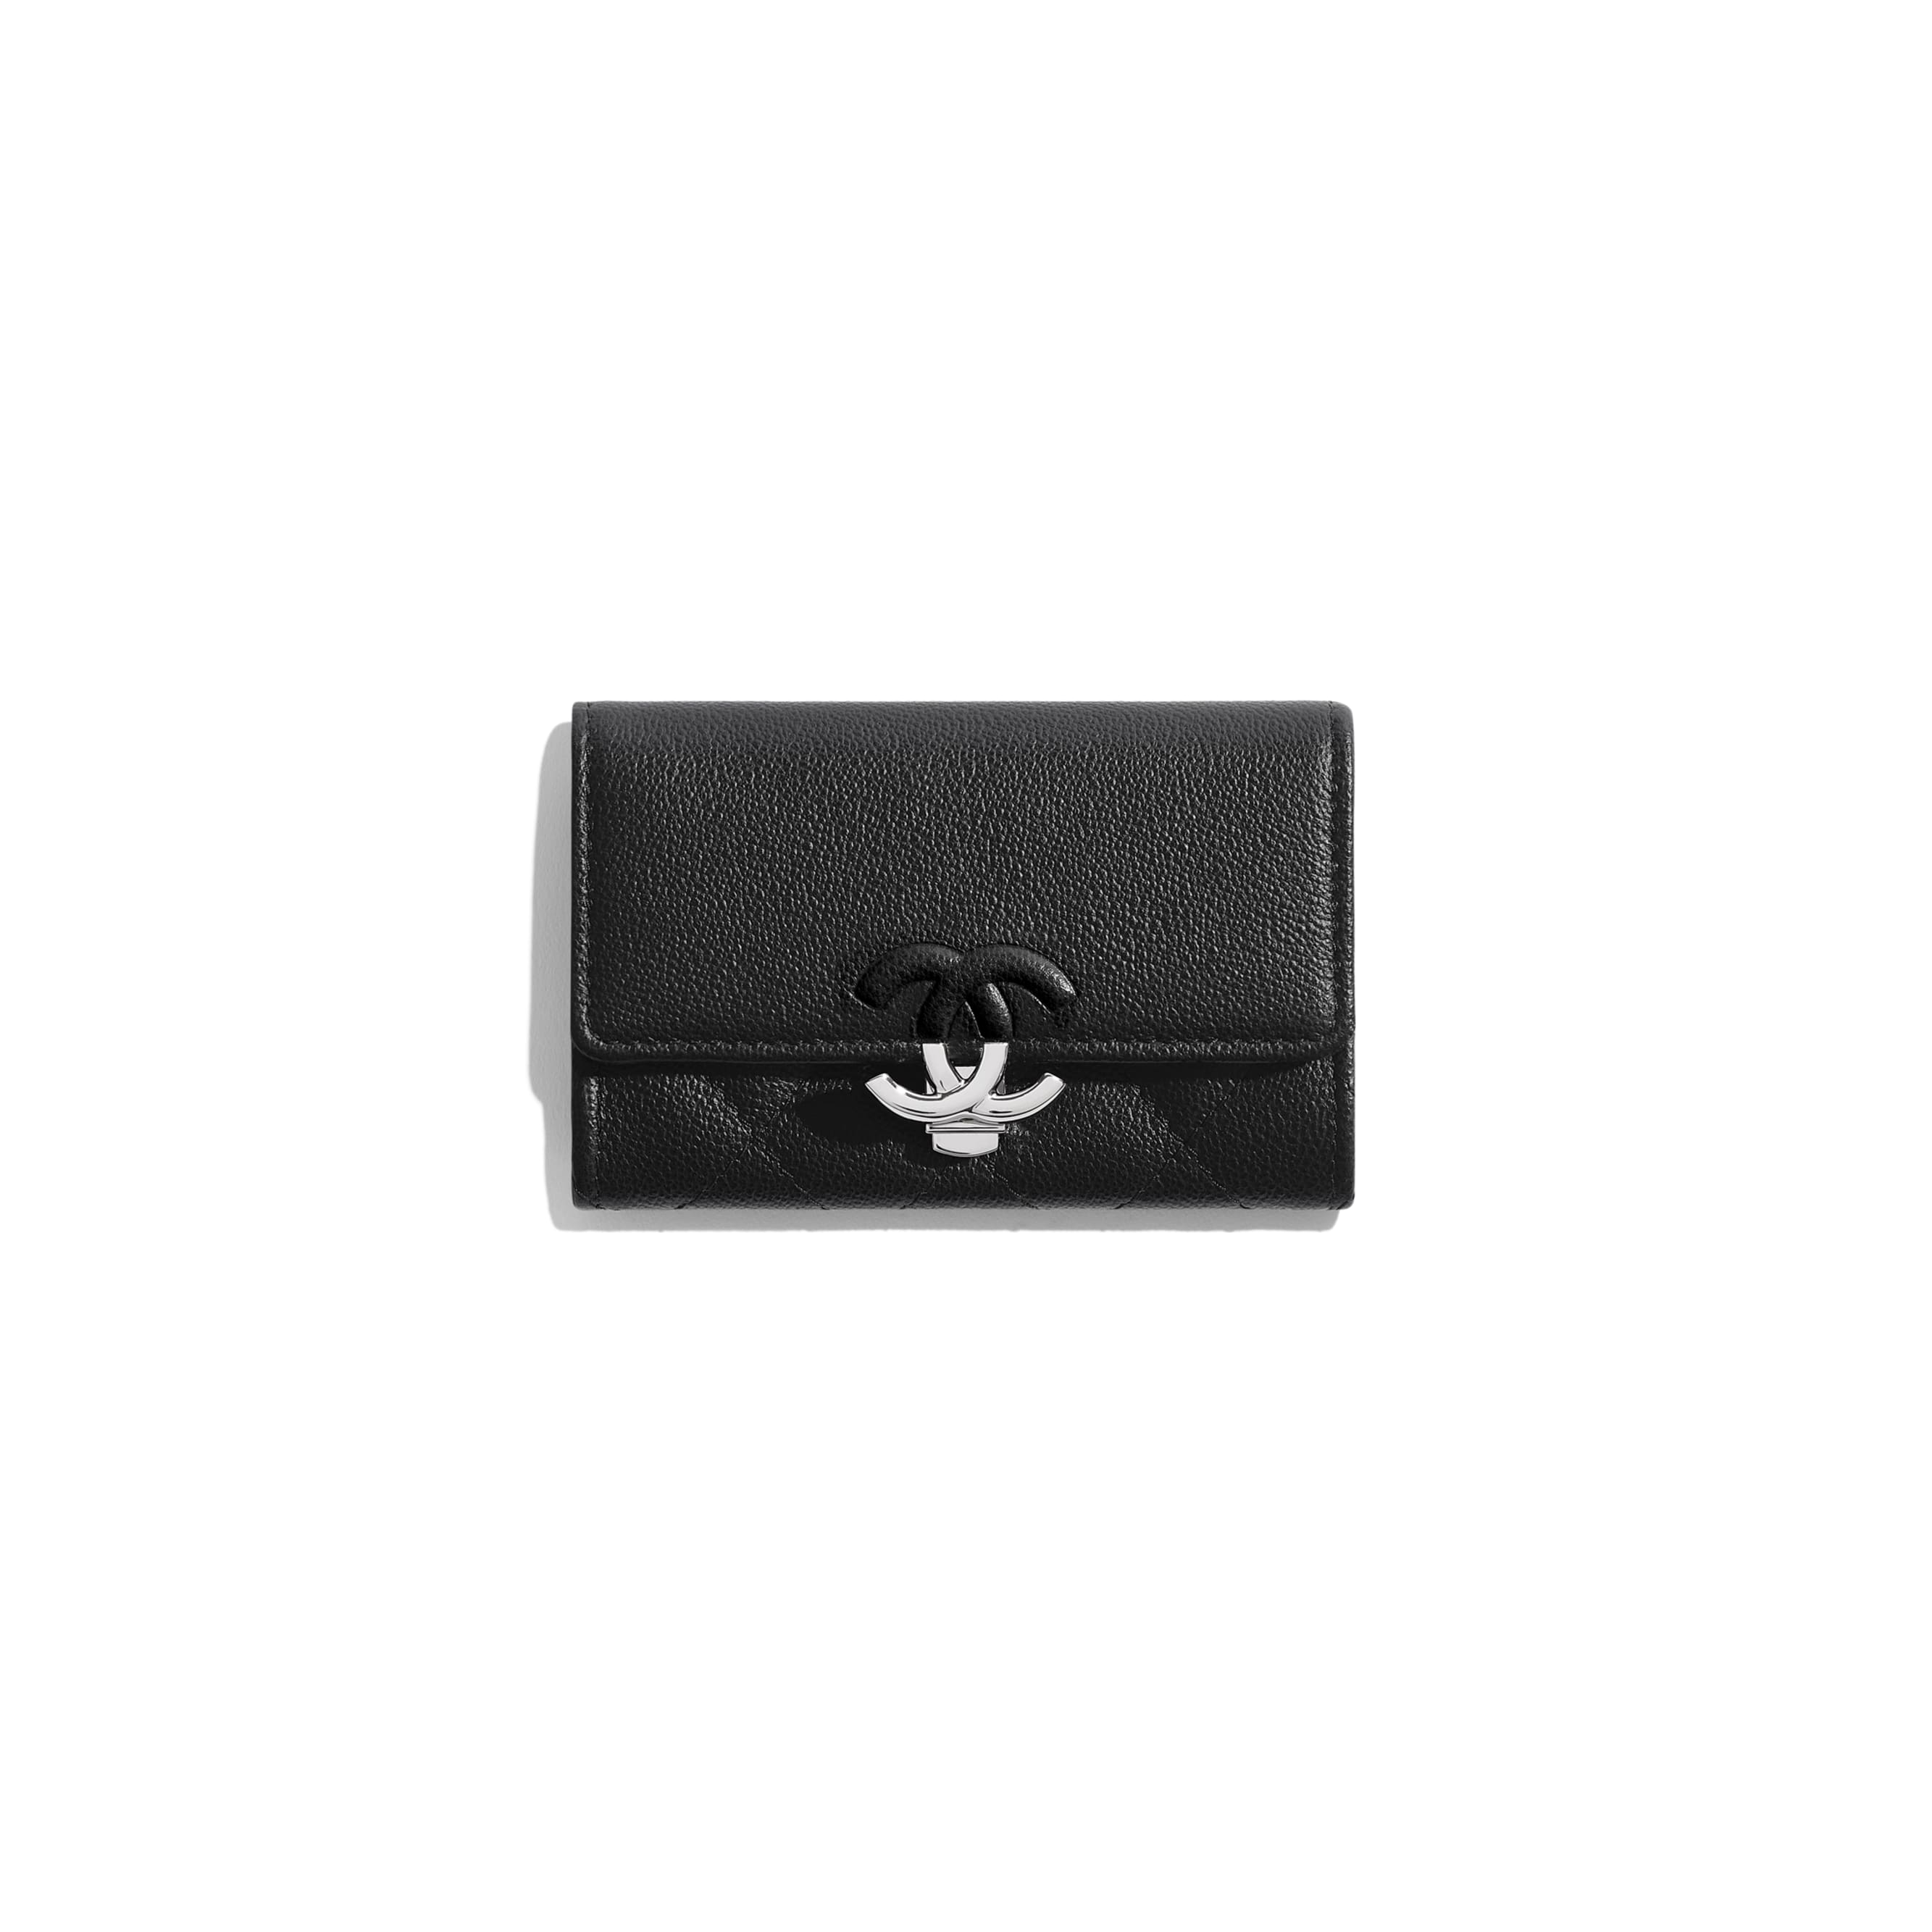 Flap Card Holder - Black - Grained Calfskin & Silver-Tone Metal - CHANEL - Default view - see standard sized version